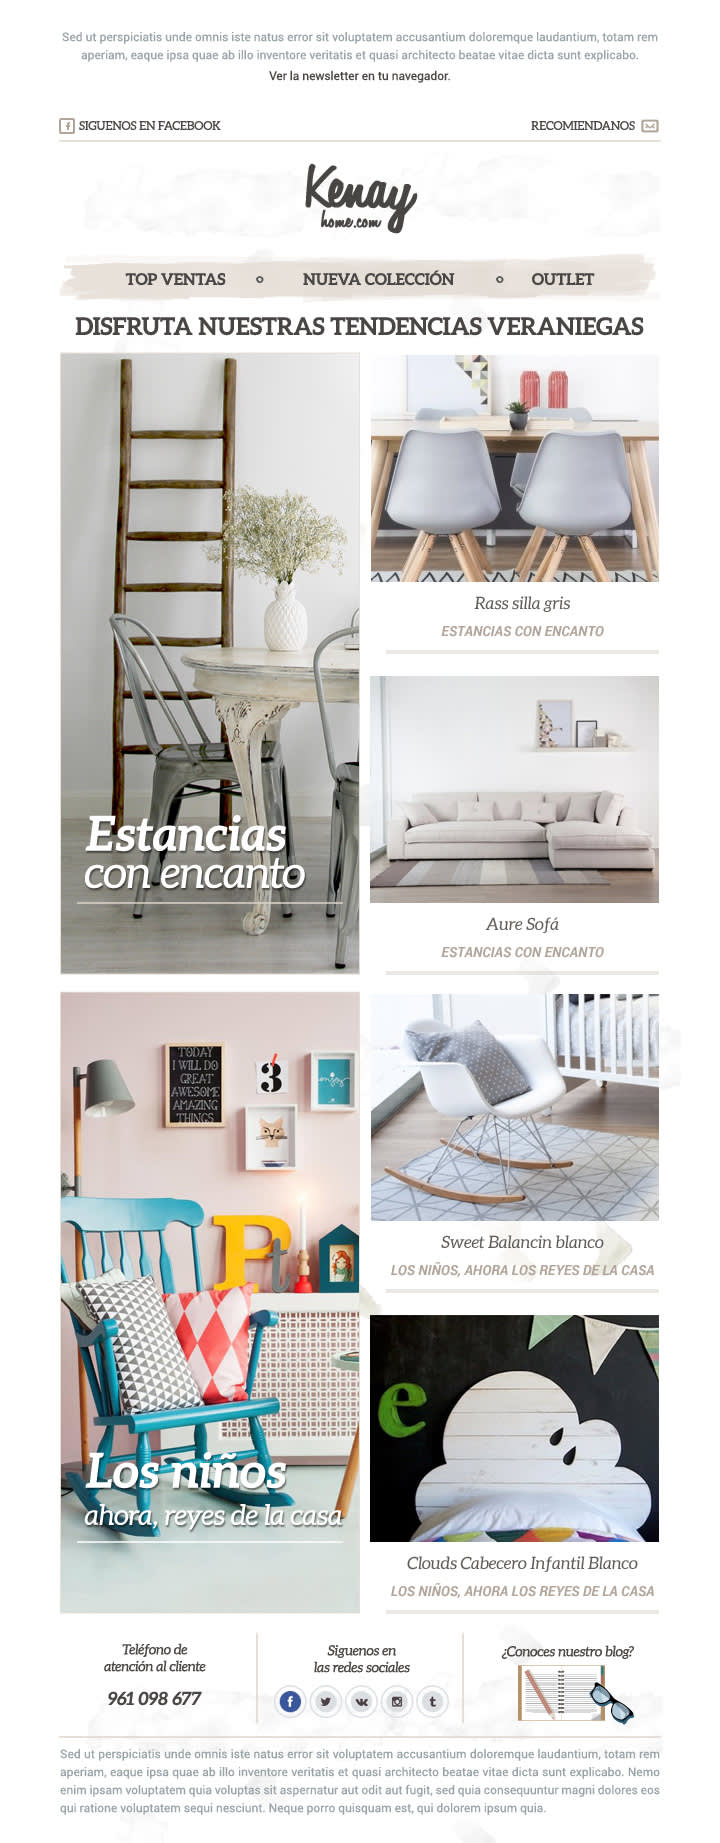 Image of an email newsletter for a home furnishing store